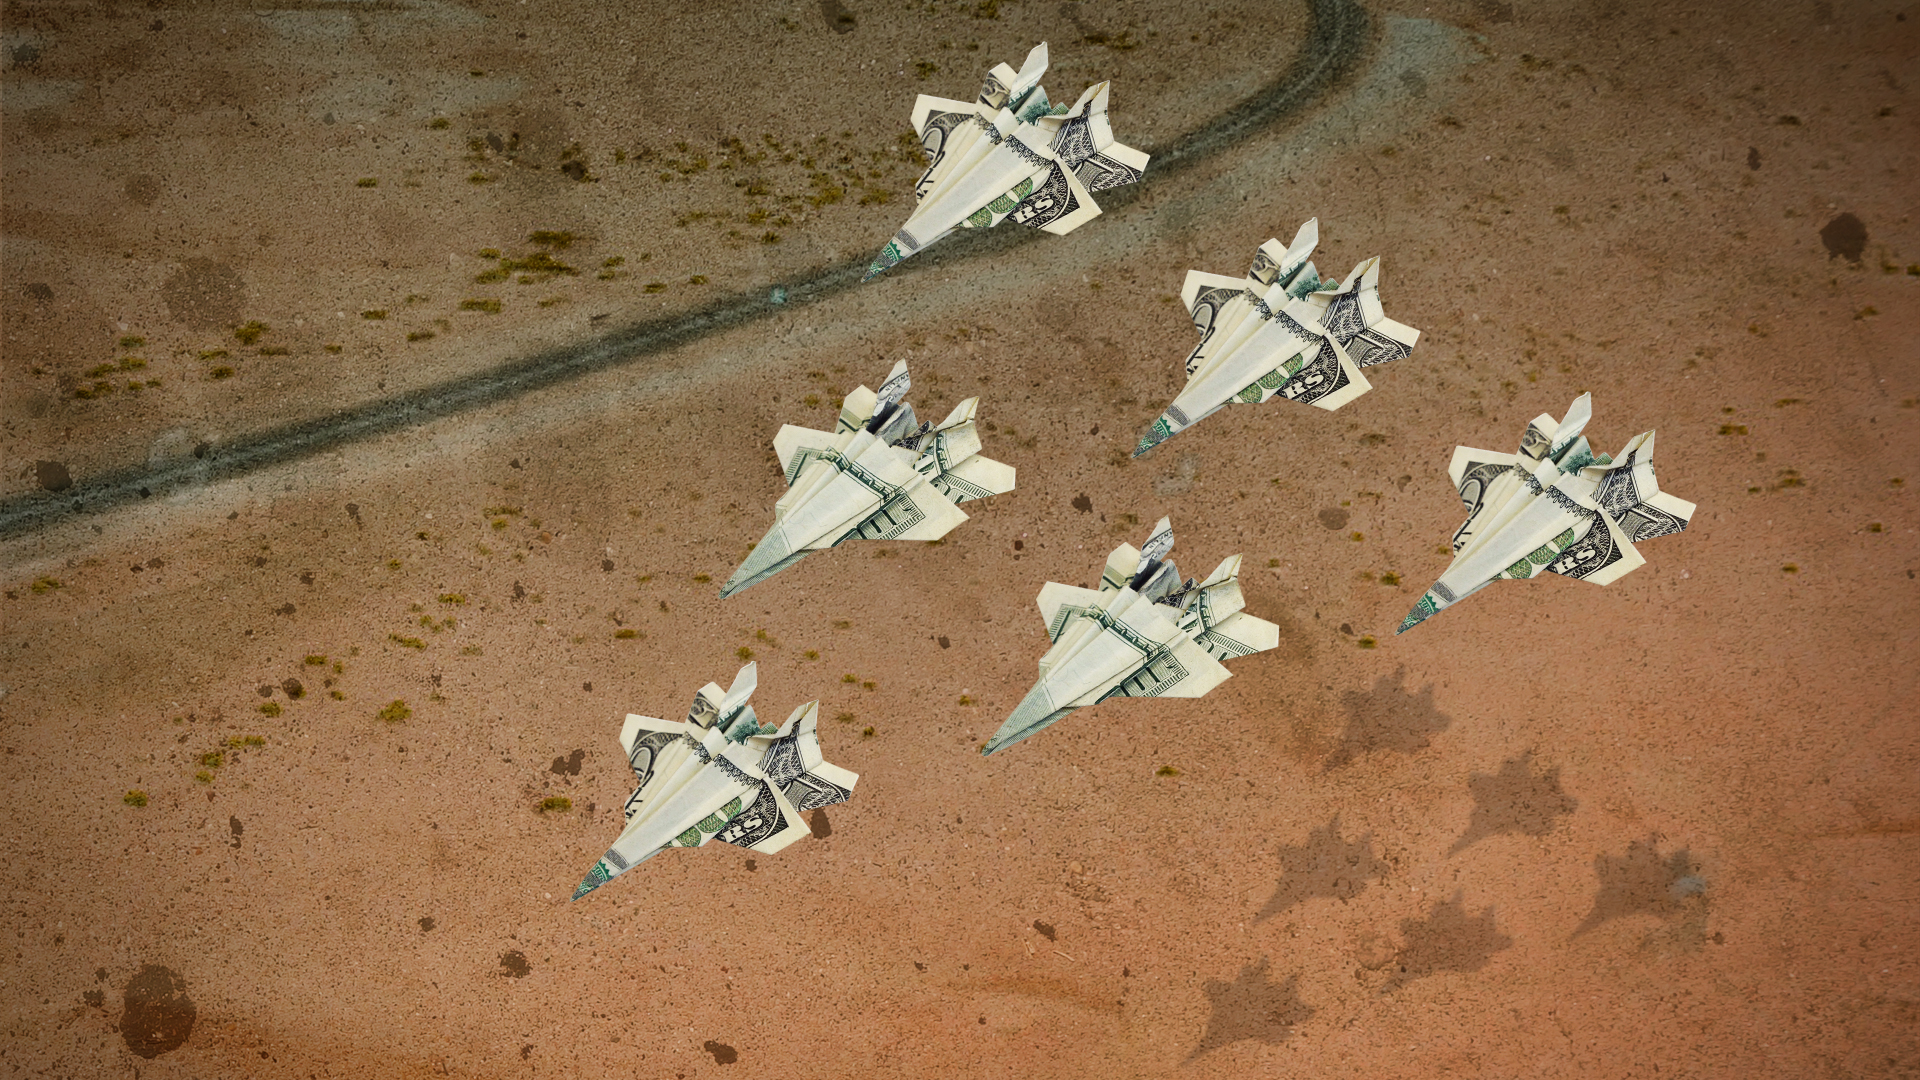 money-paper airplane fighters, in graphic for Shadow World created by Independent Lens